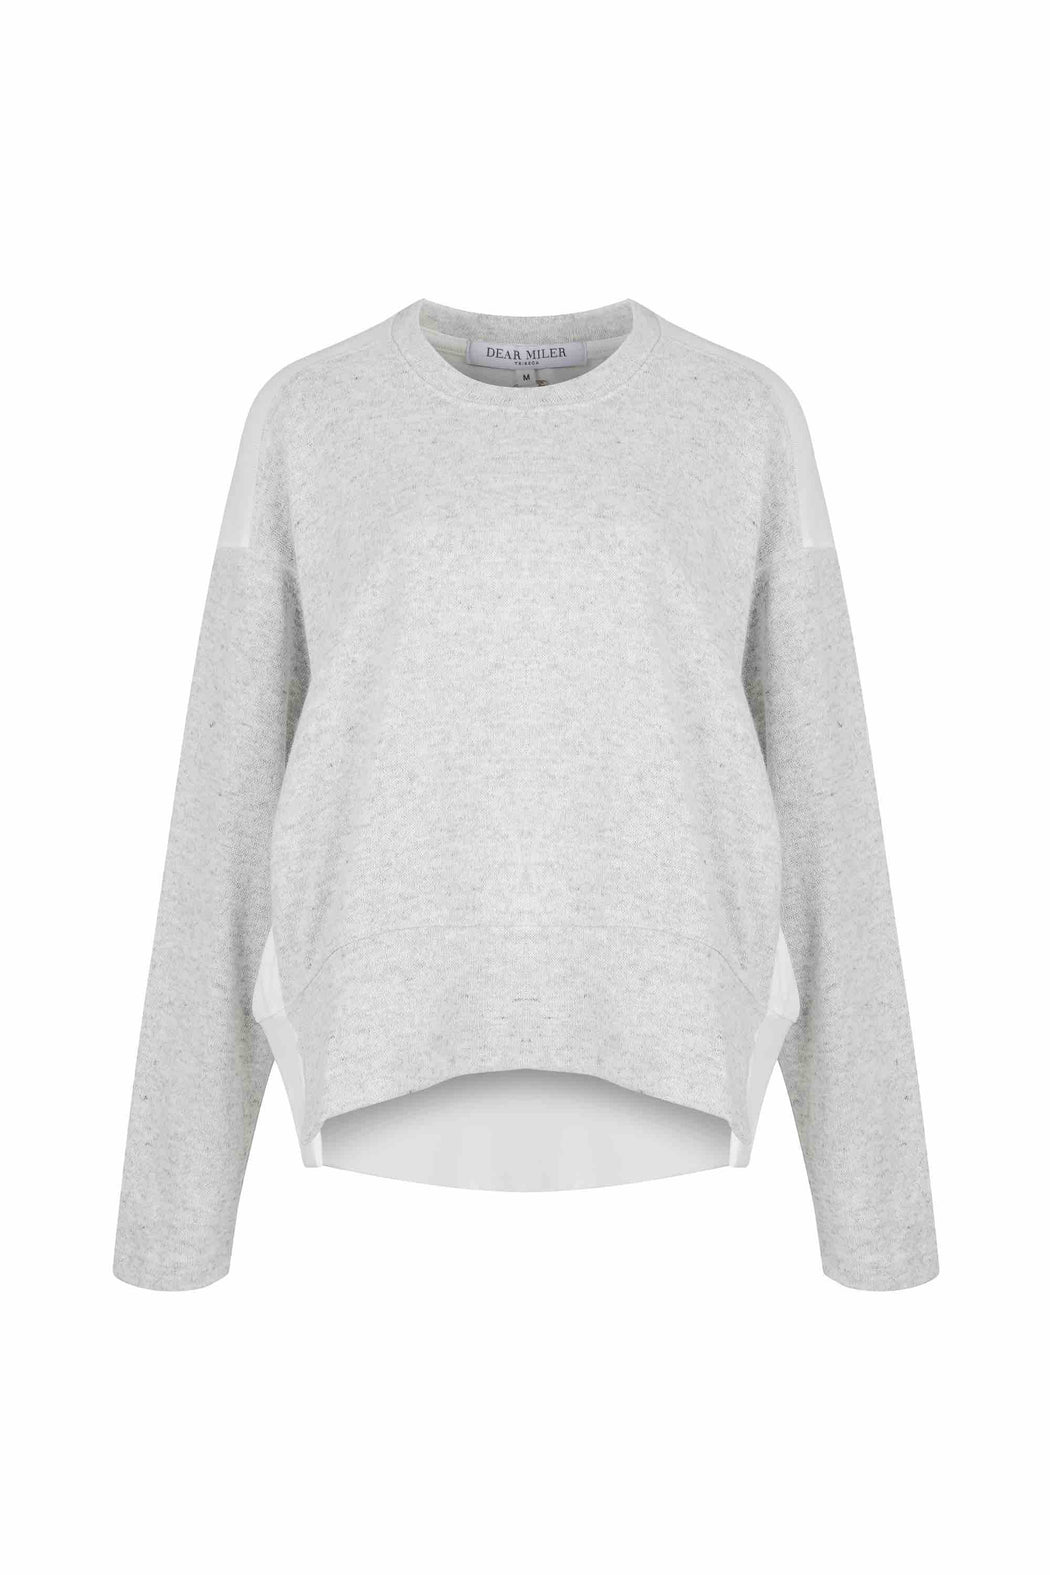 Front view of Women Fabric Block Sweater, made with Organic Cotton and wool blends in white/melange grey